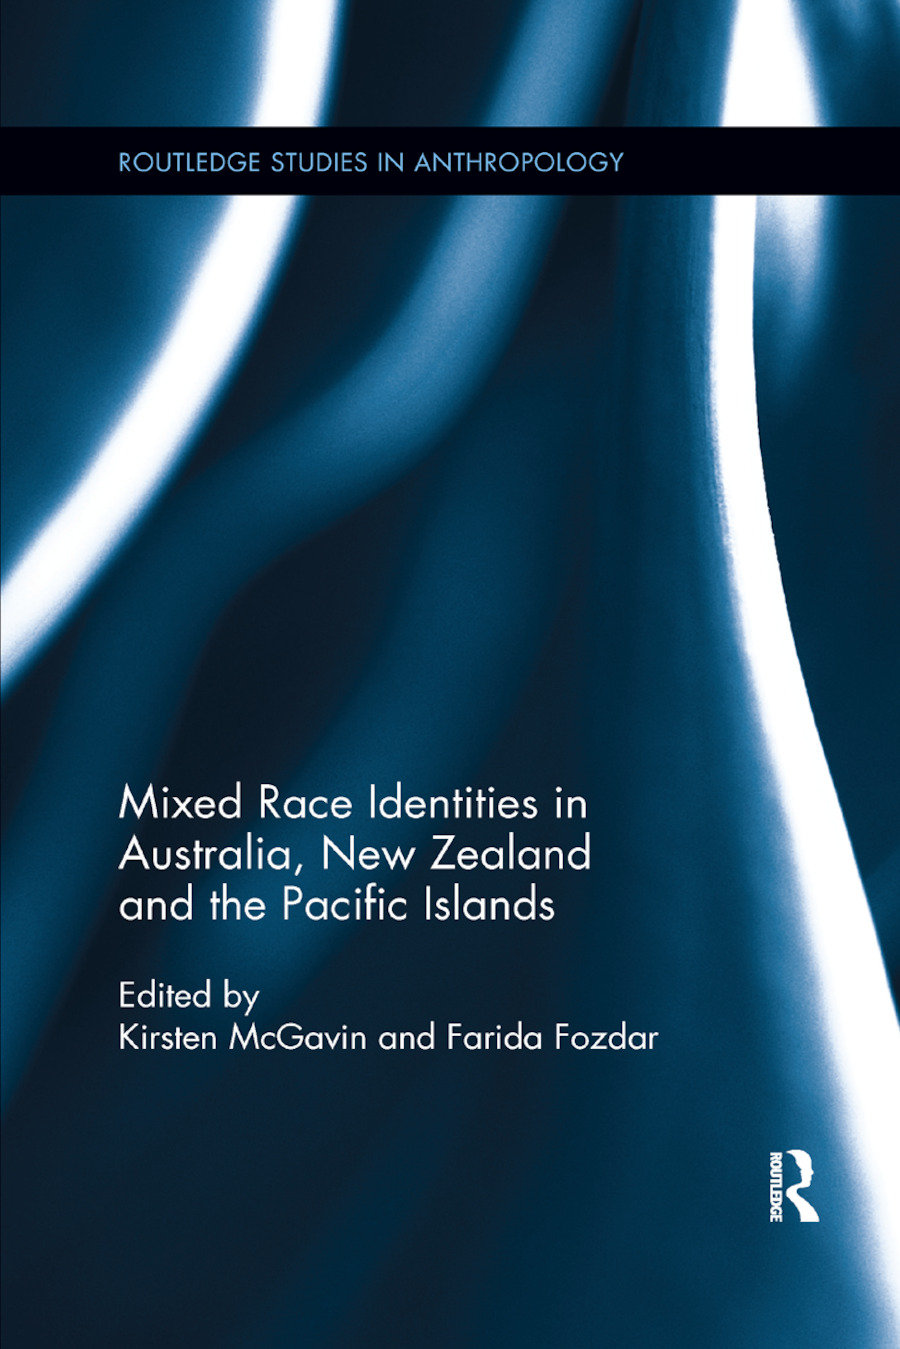 Mixed Race Identities in Australia, New Zealand and the Pacific Islands book cover